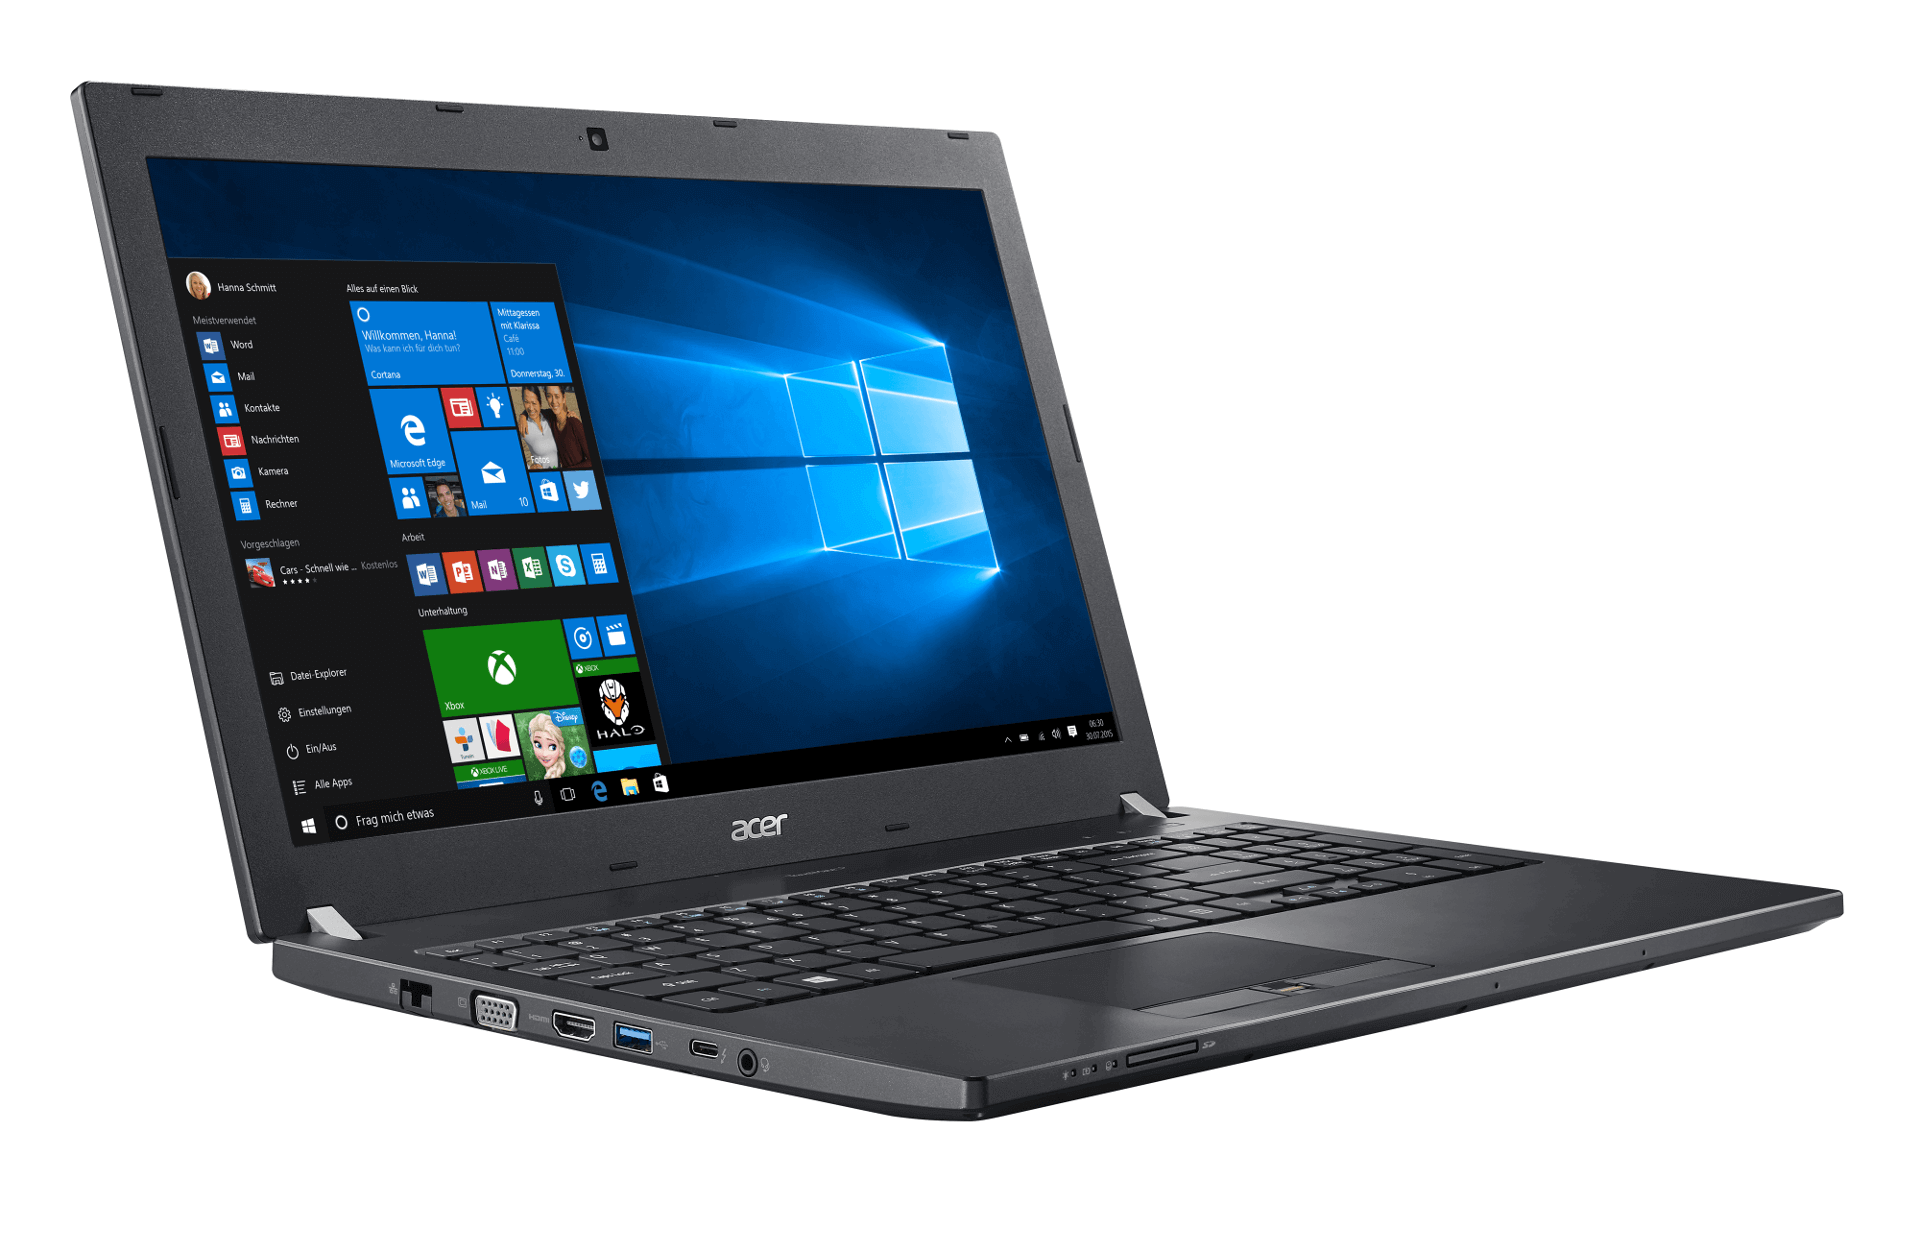 Notebook Köln Acer Travelmate P658 Tmp658 G3 M 77v4 Kaufen Notebook Köln